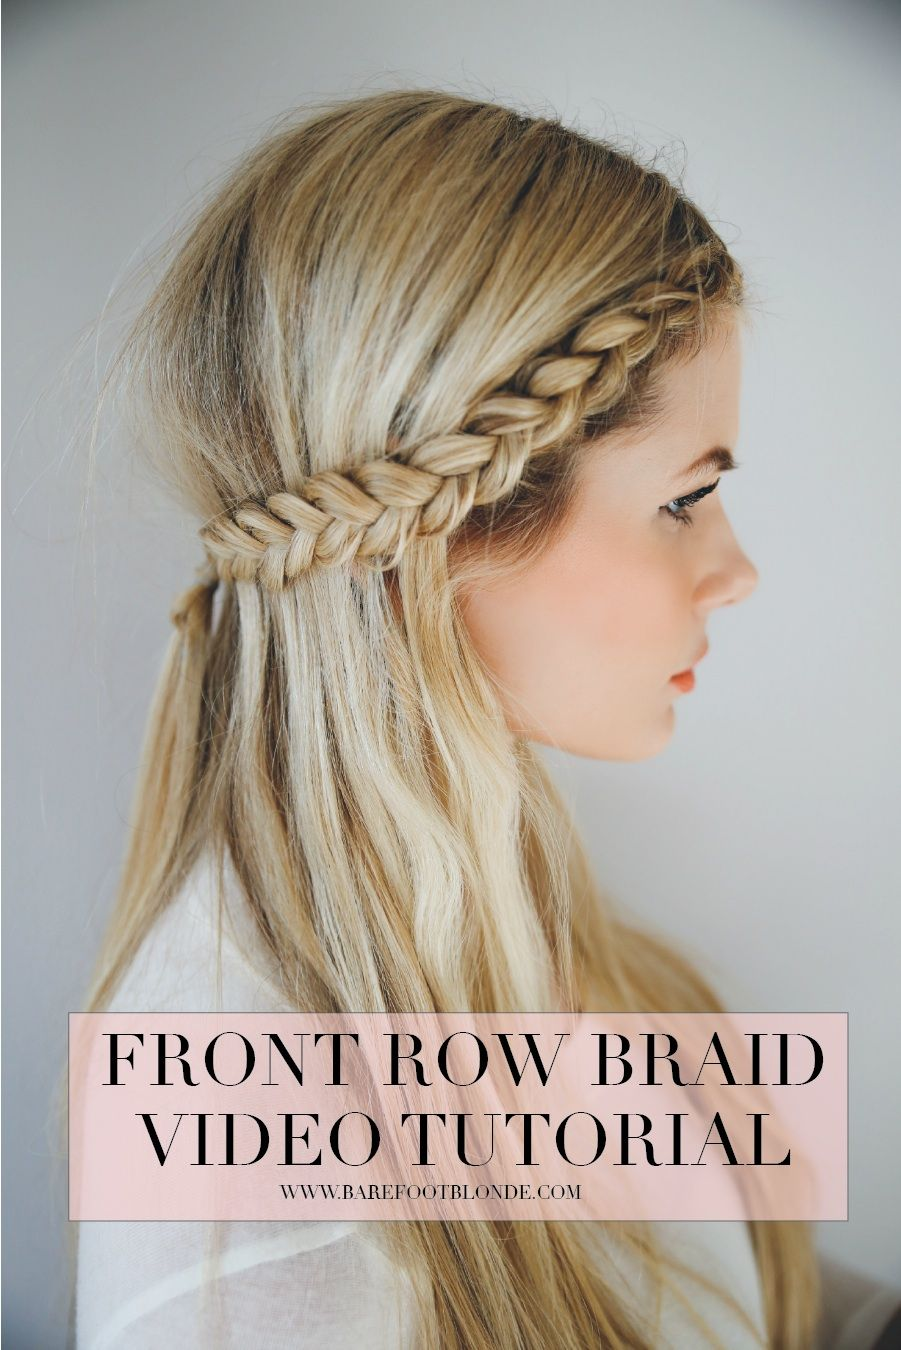 14 Fabulously Cool Braids for All Occasions 14 Fabulously Cool Braids for All Occasions new picture